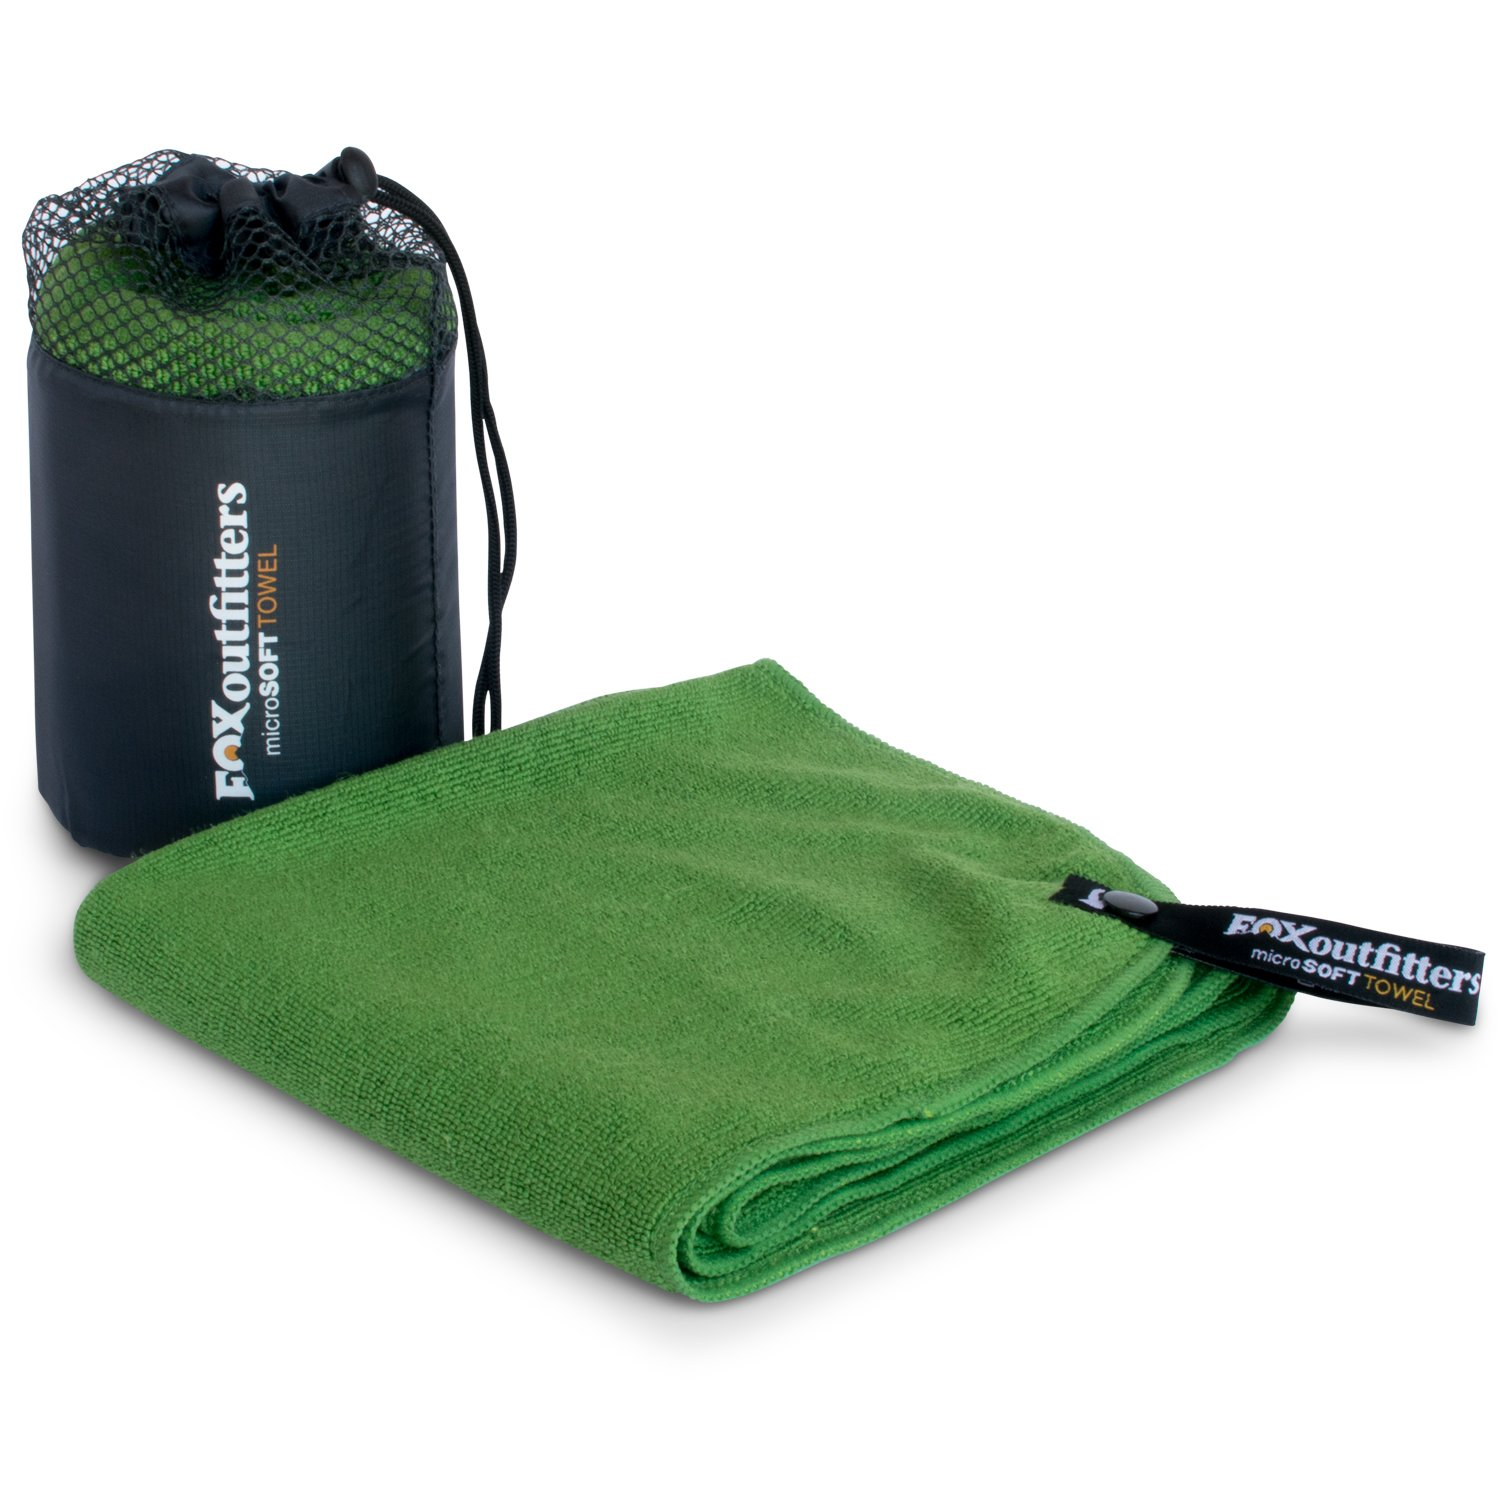 Fox Outfitters MicroSoft Towel Hiking Lightweight /& Great for Backpacking Ultra Compact Soft Dry Microfiber Camping /& Travel Towel with Hang Loop Snap Sports. Green - Small